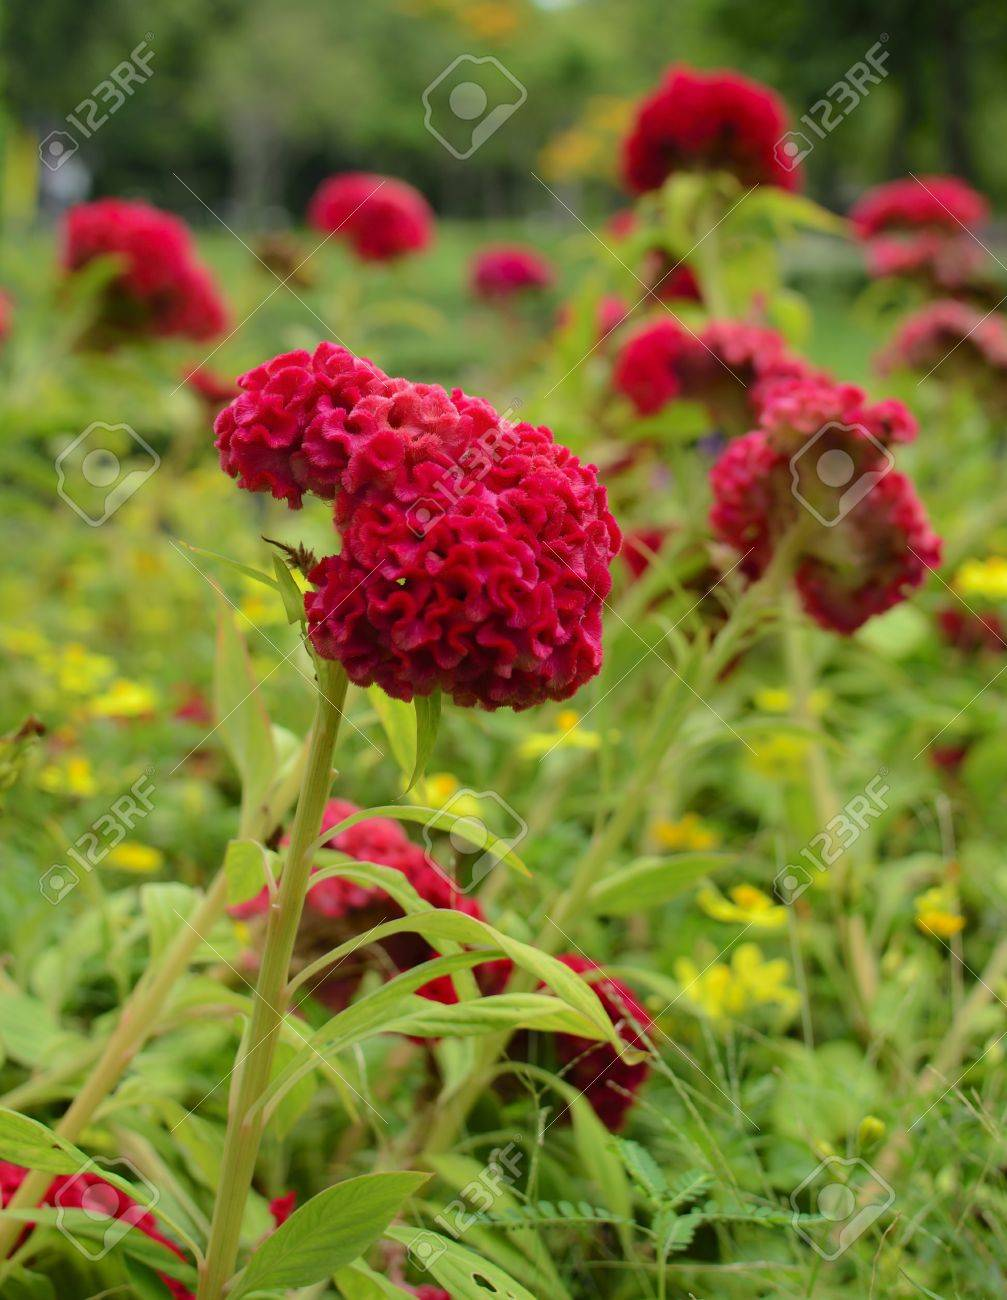 Beutiful celosia argentea red beutiful flower stock photo, picture and